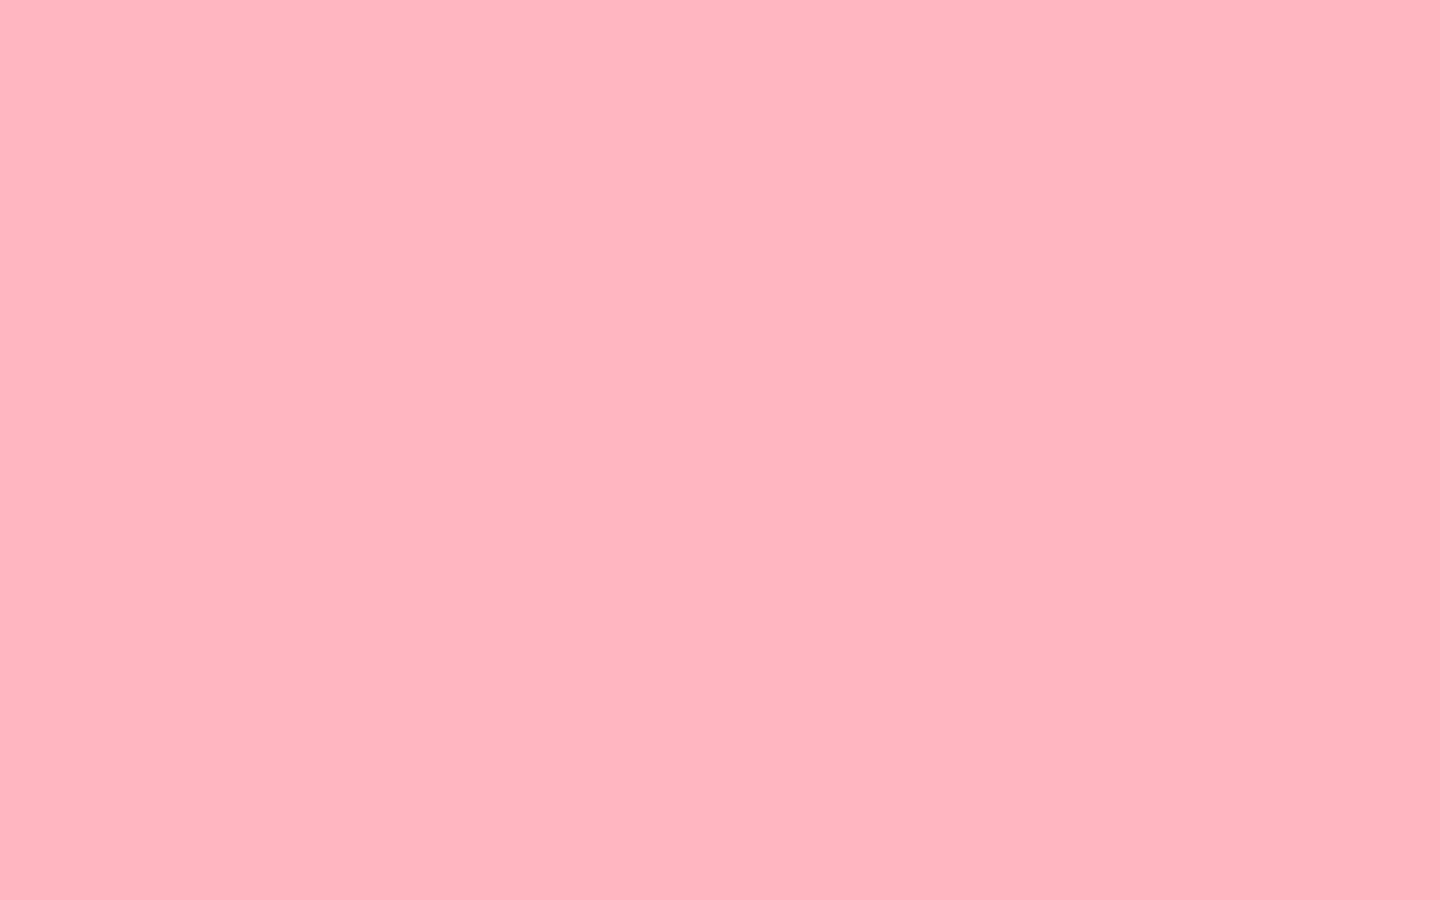 1440x900 resolution Light Pink solid color background view and 1440x900